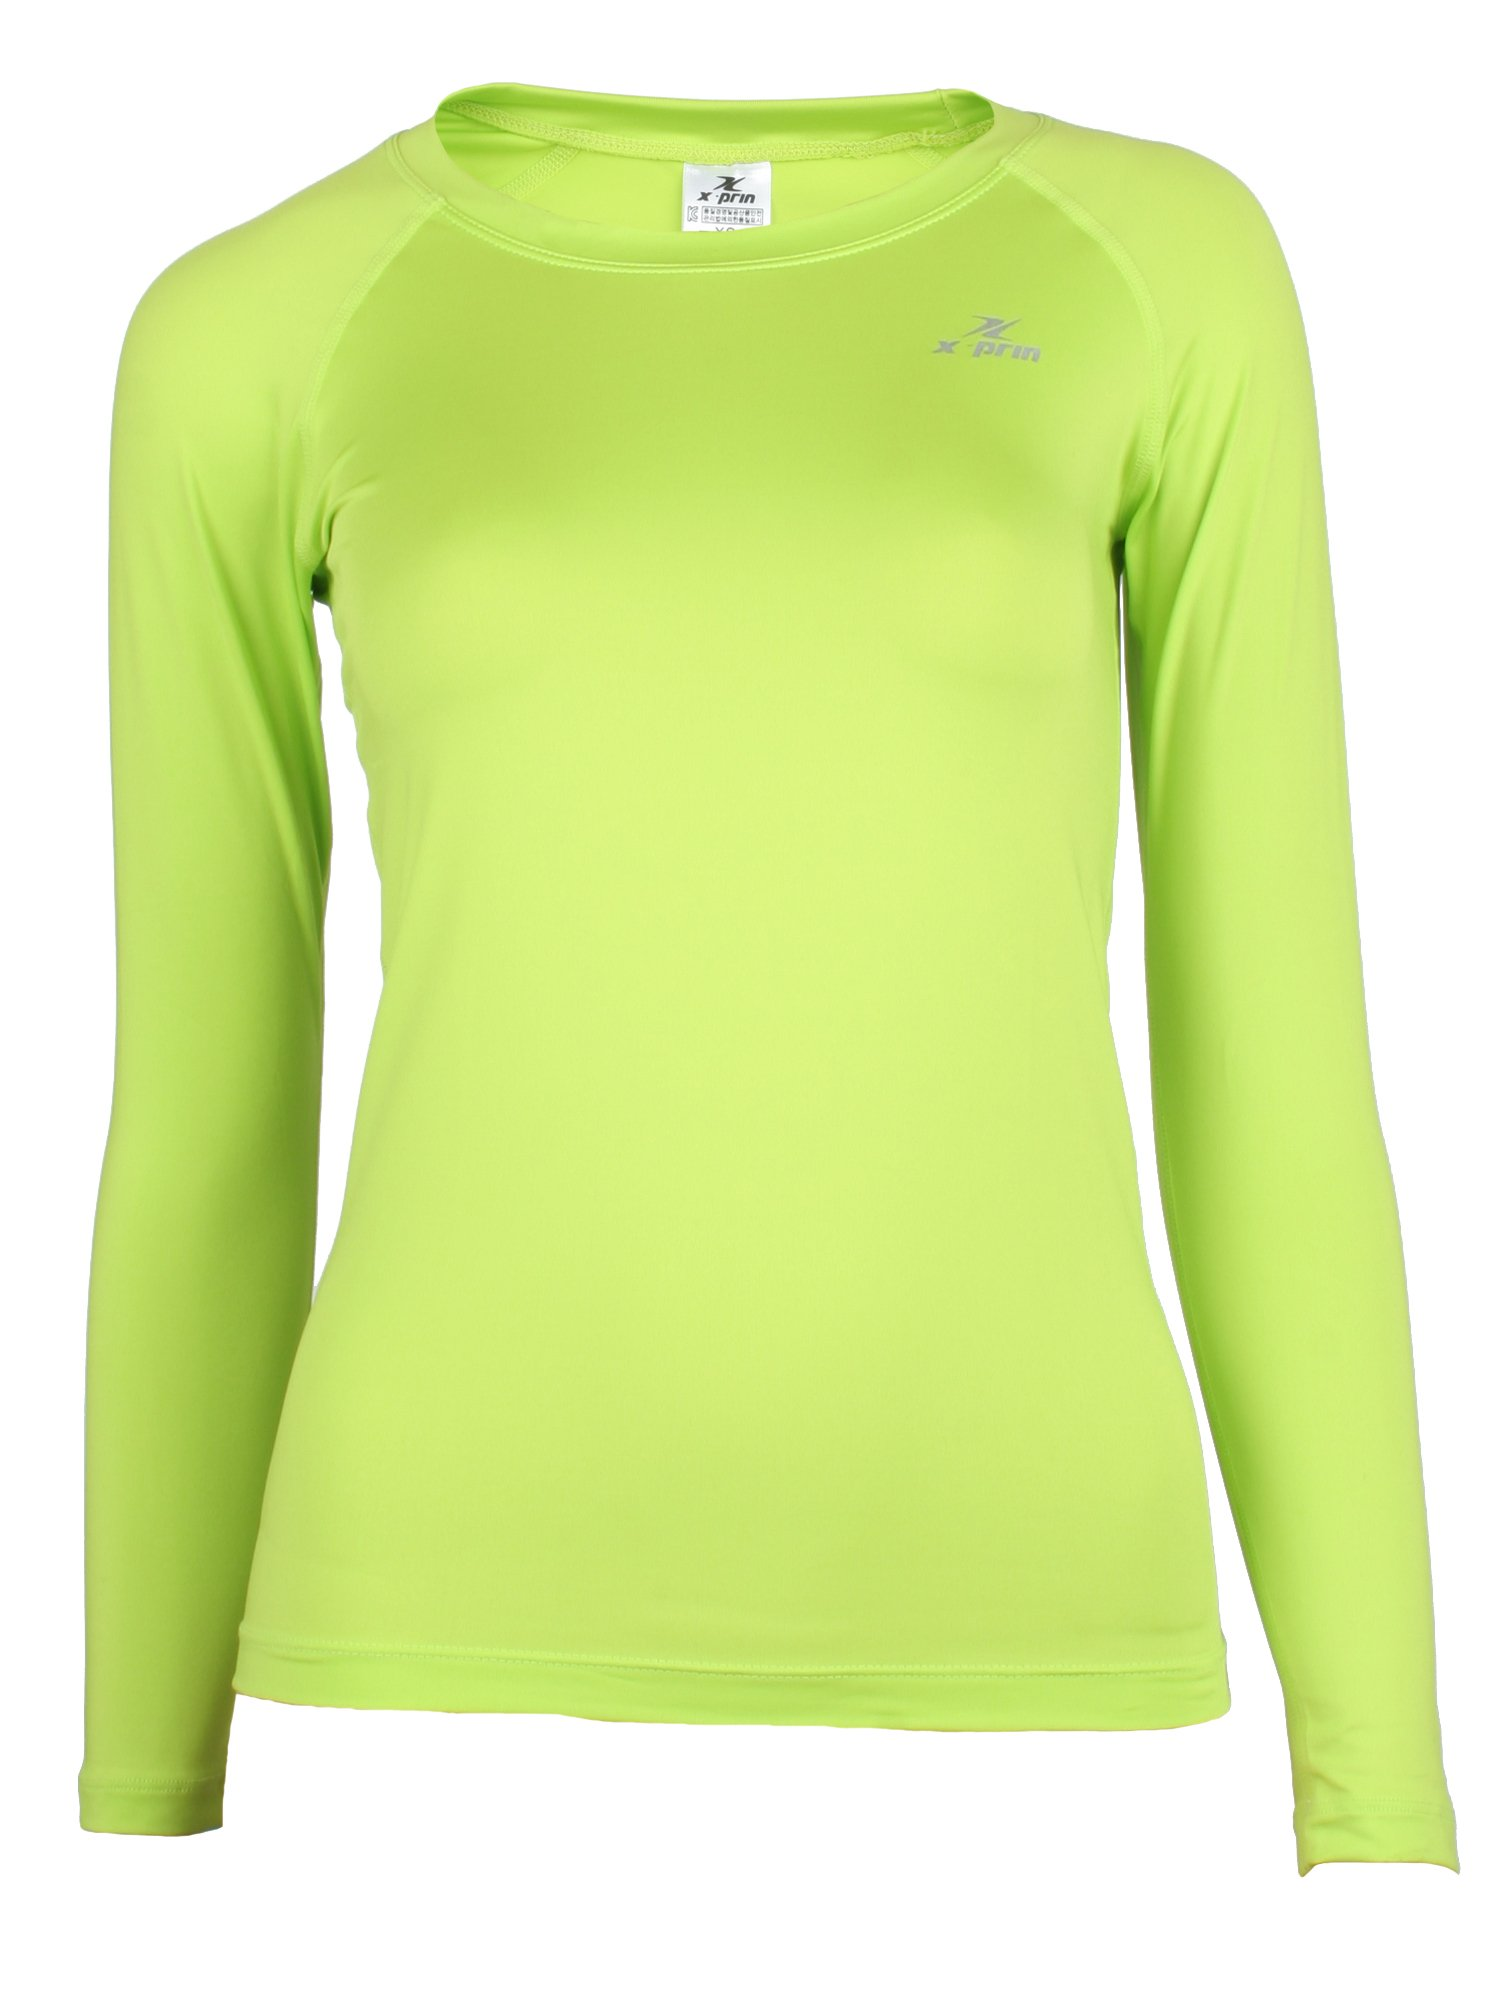 XPRIN A100 Series Women's Long Sleeve Cool Base Layer Compression Shirt Sports Wear (S, A104GREEN)